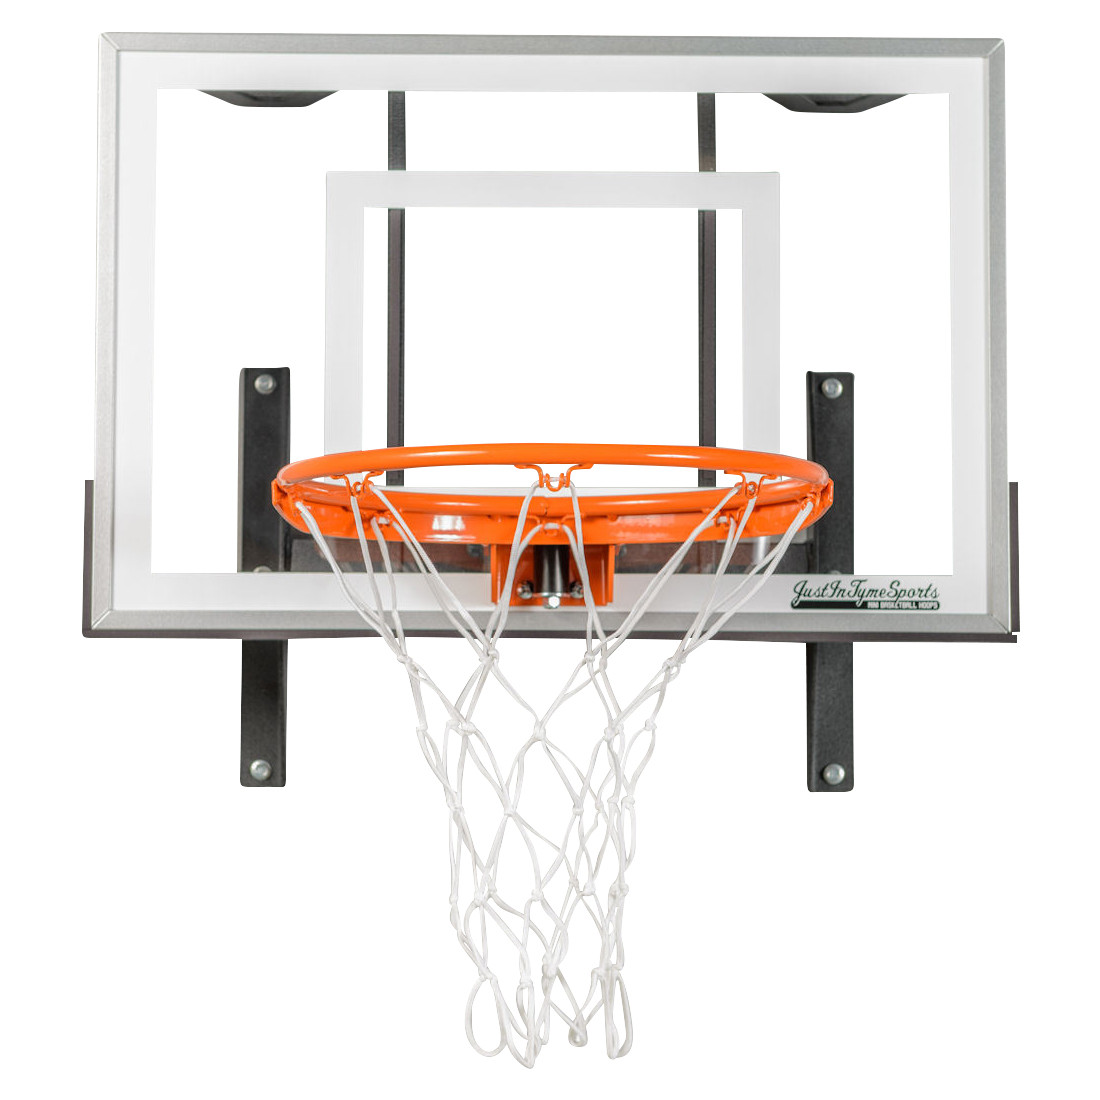 Bedroom Sets Sale Mini Pro Xtreme Basketball Hoop Set Justintymesports